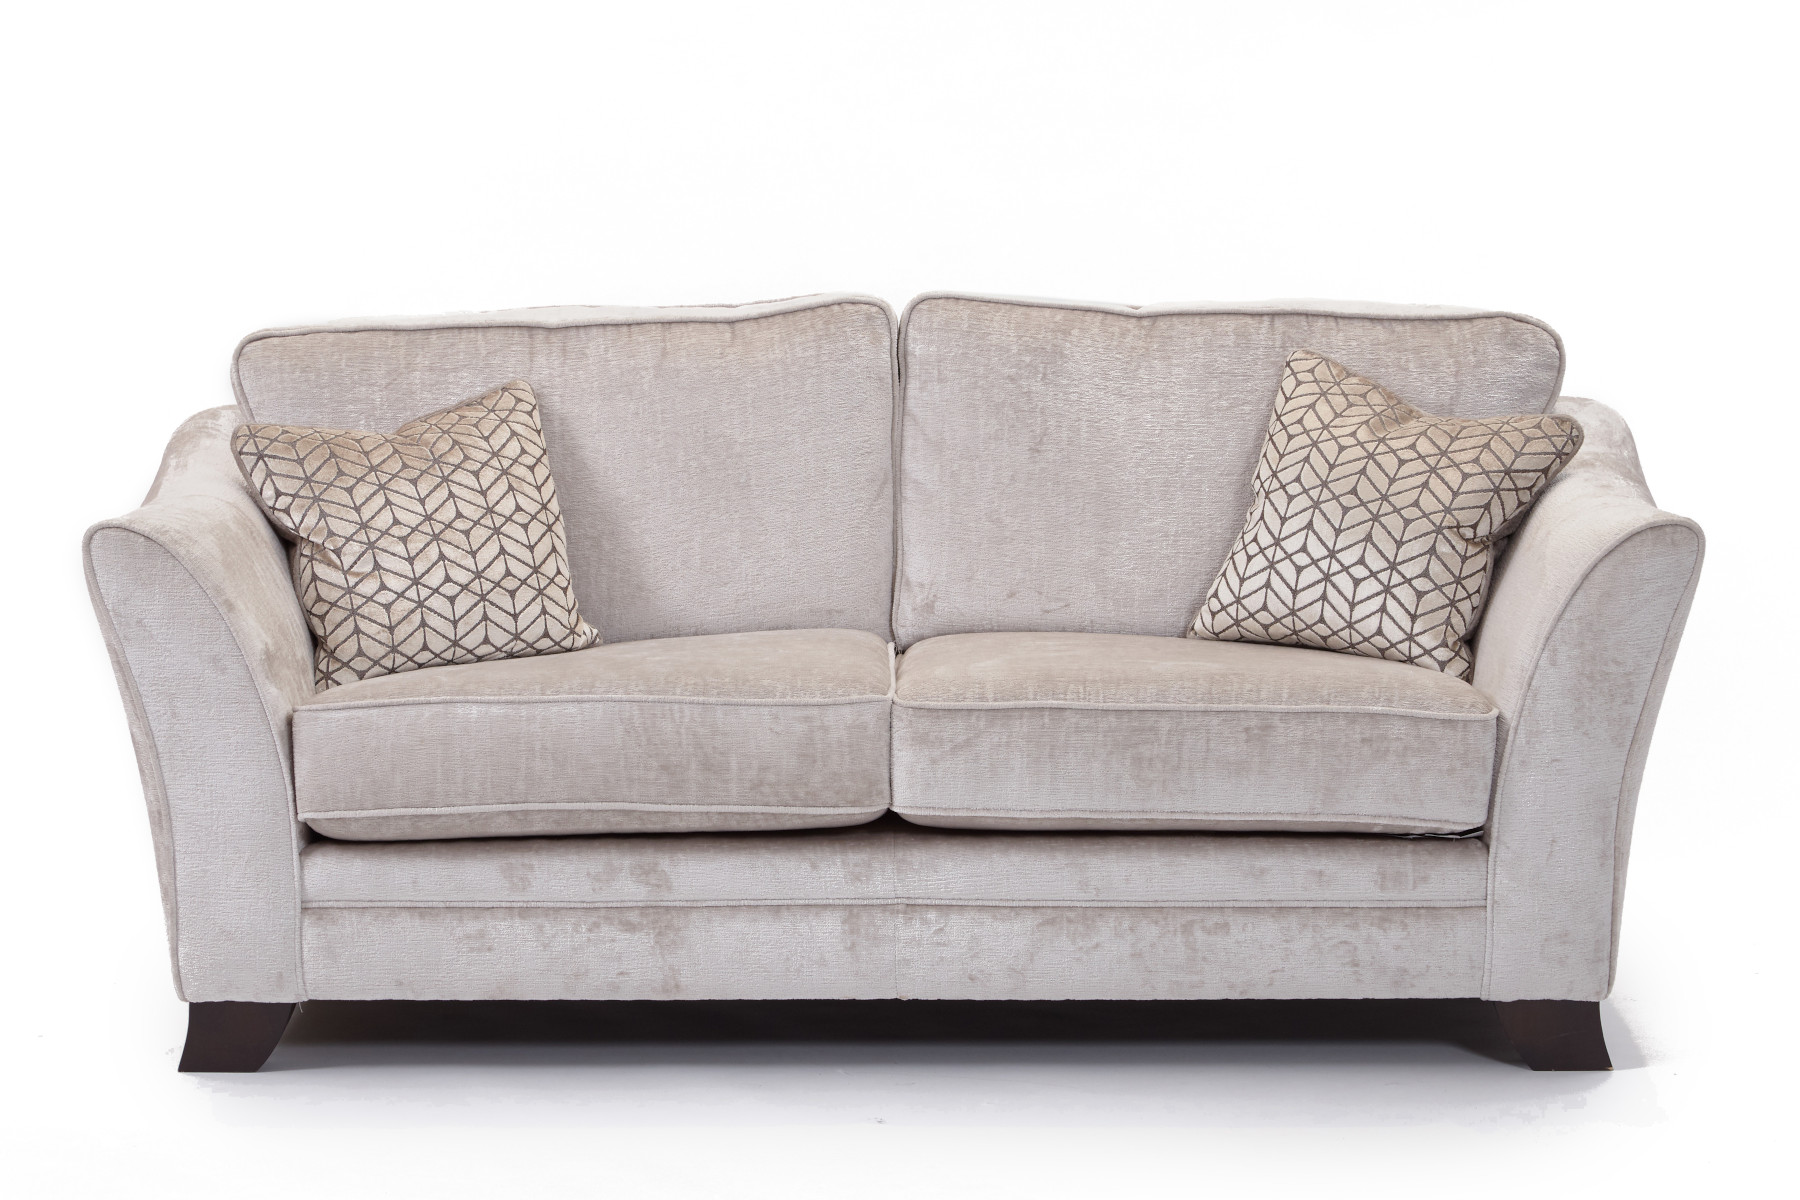 Margate 3 Seater Sofa